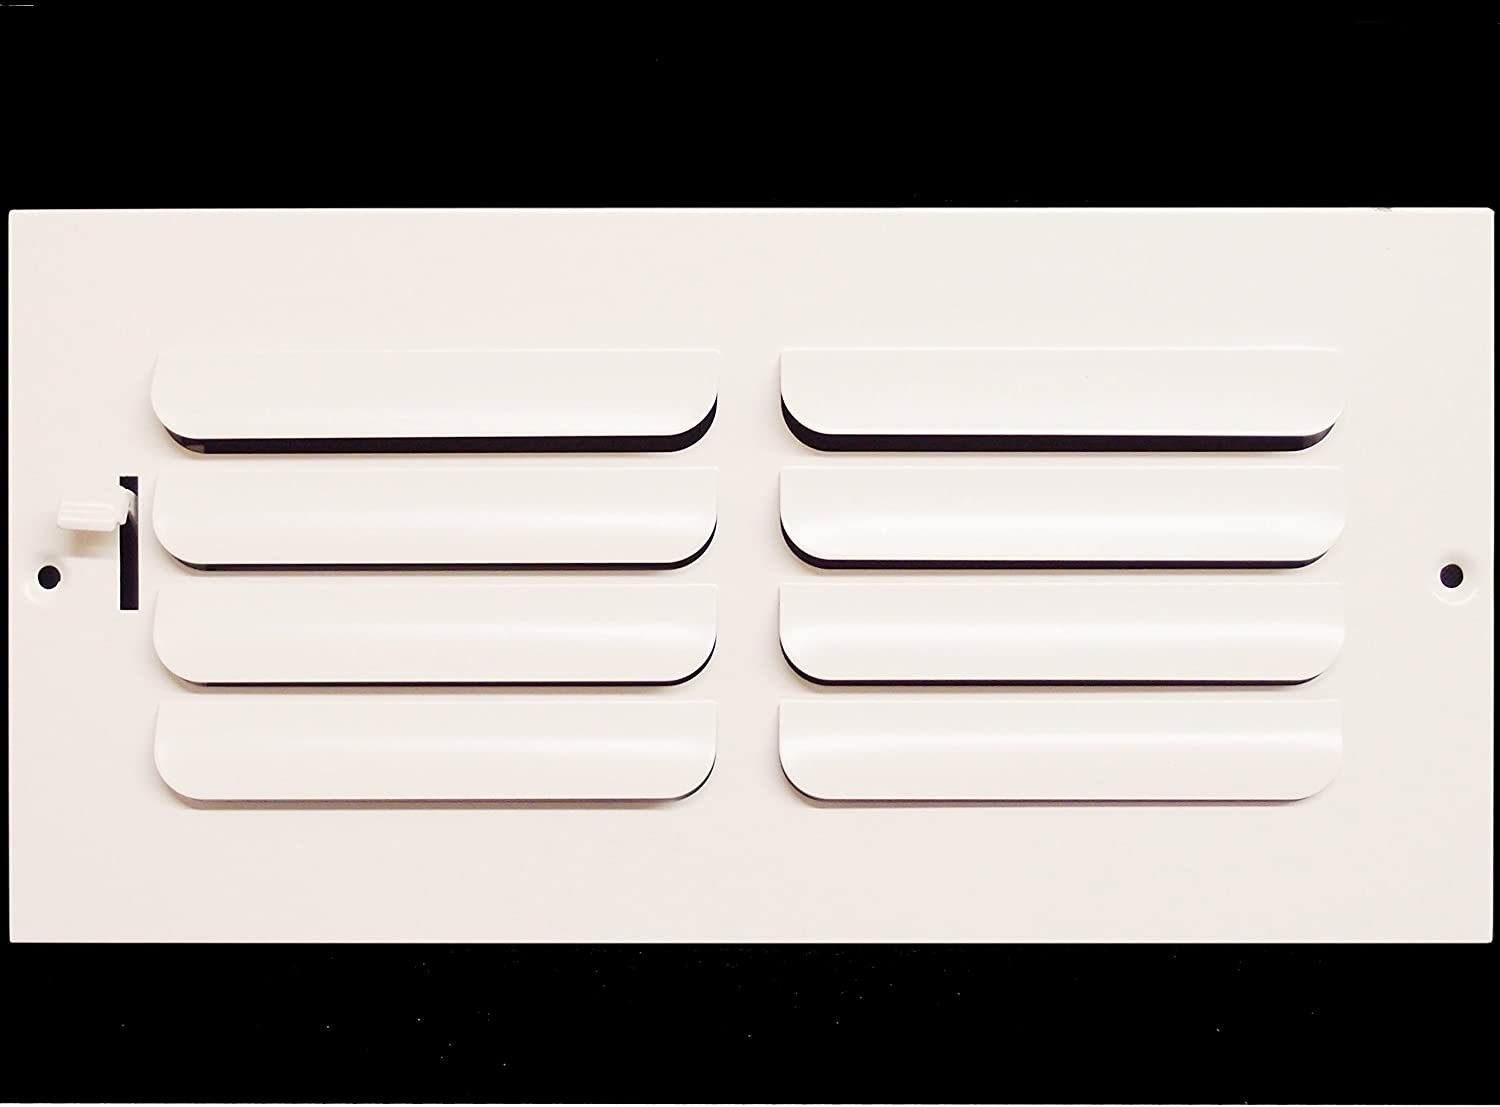 High Airflow Grille Register Vent Duct Cover 14 X 4 1-Way Fixed Curved Blade AIR Supply Diffuser Sidewall or Ceiling White HVAC Premium